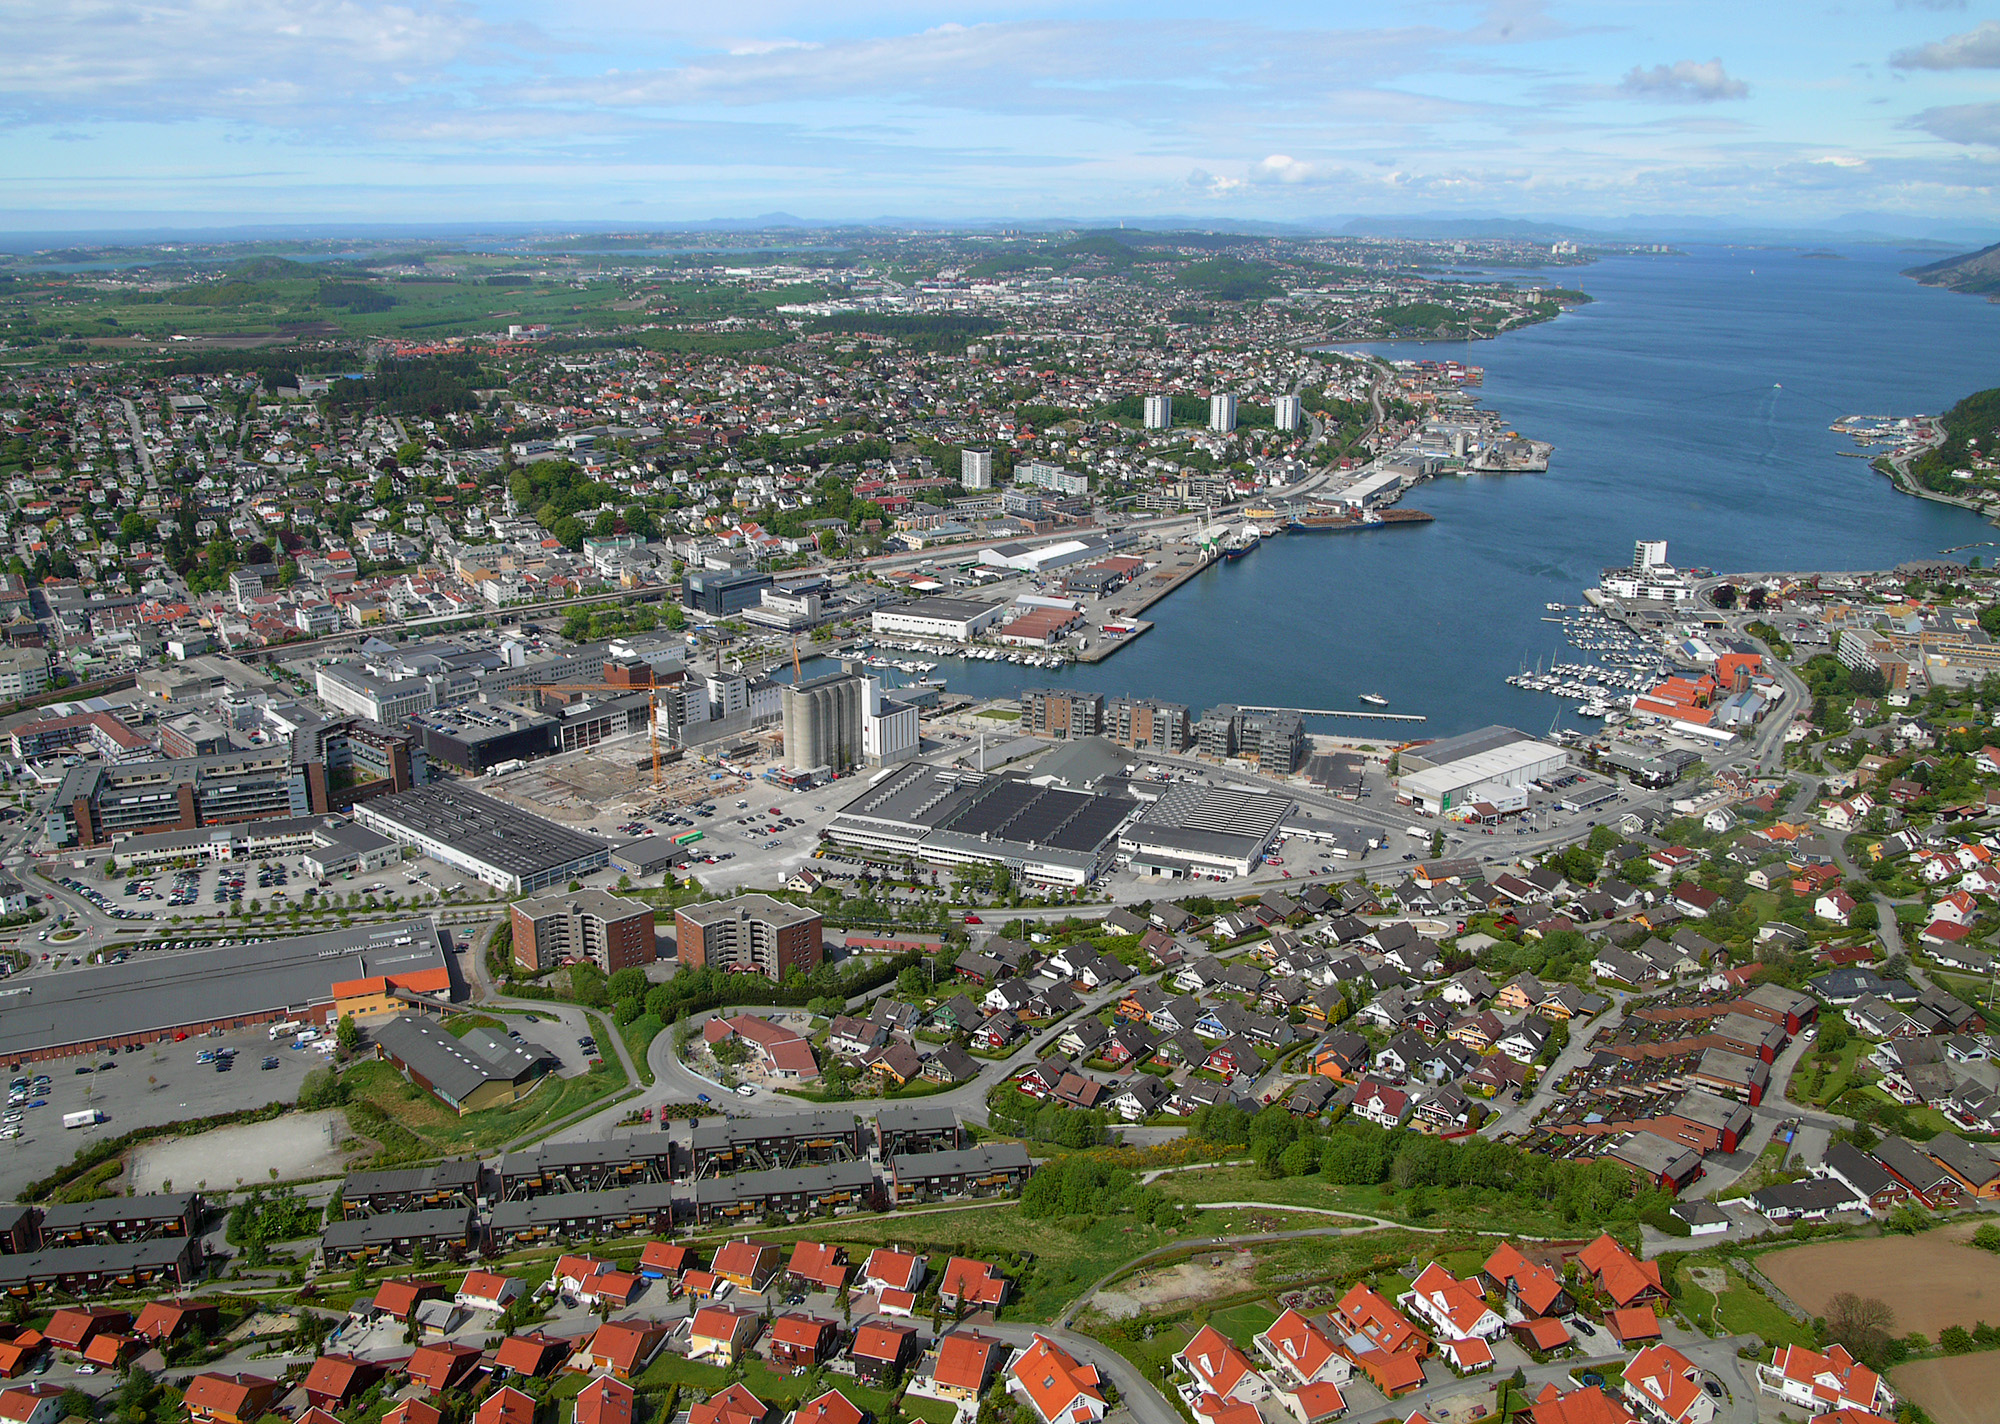 Sandnes Norway  City pictures : Sandnes edit Wikipedia, the free encyclopedia